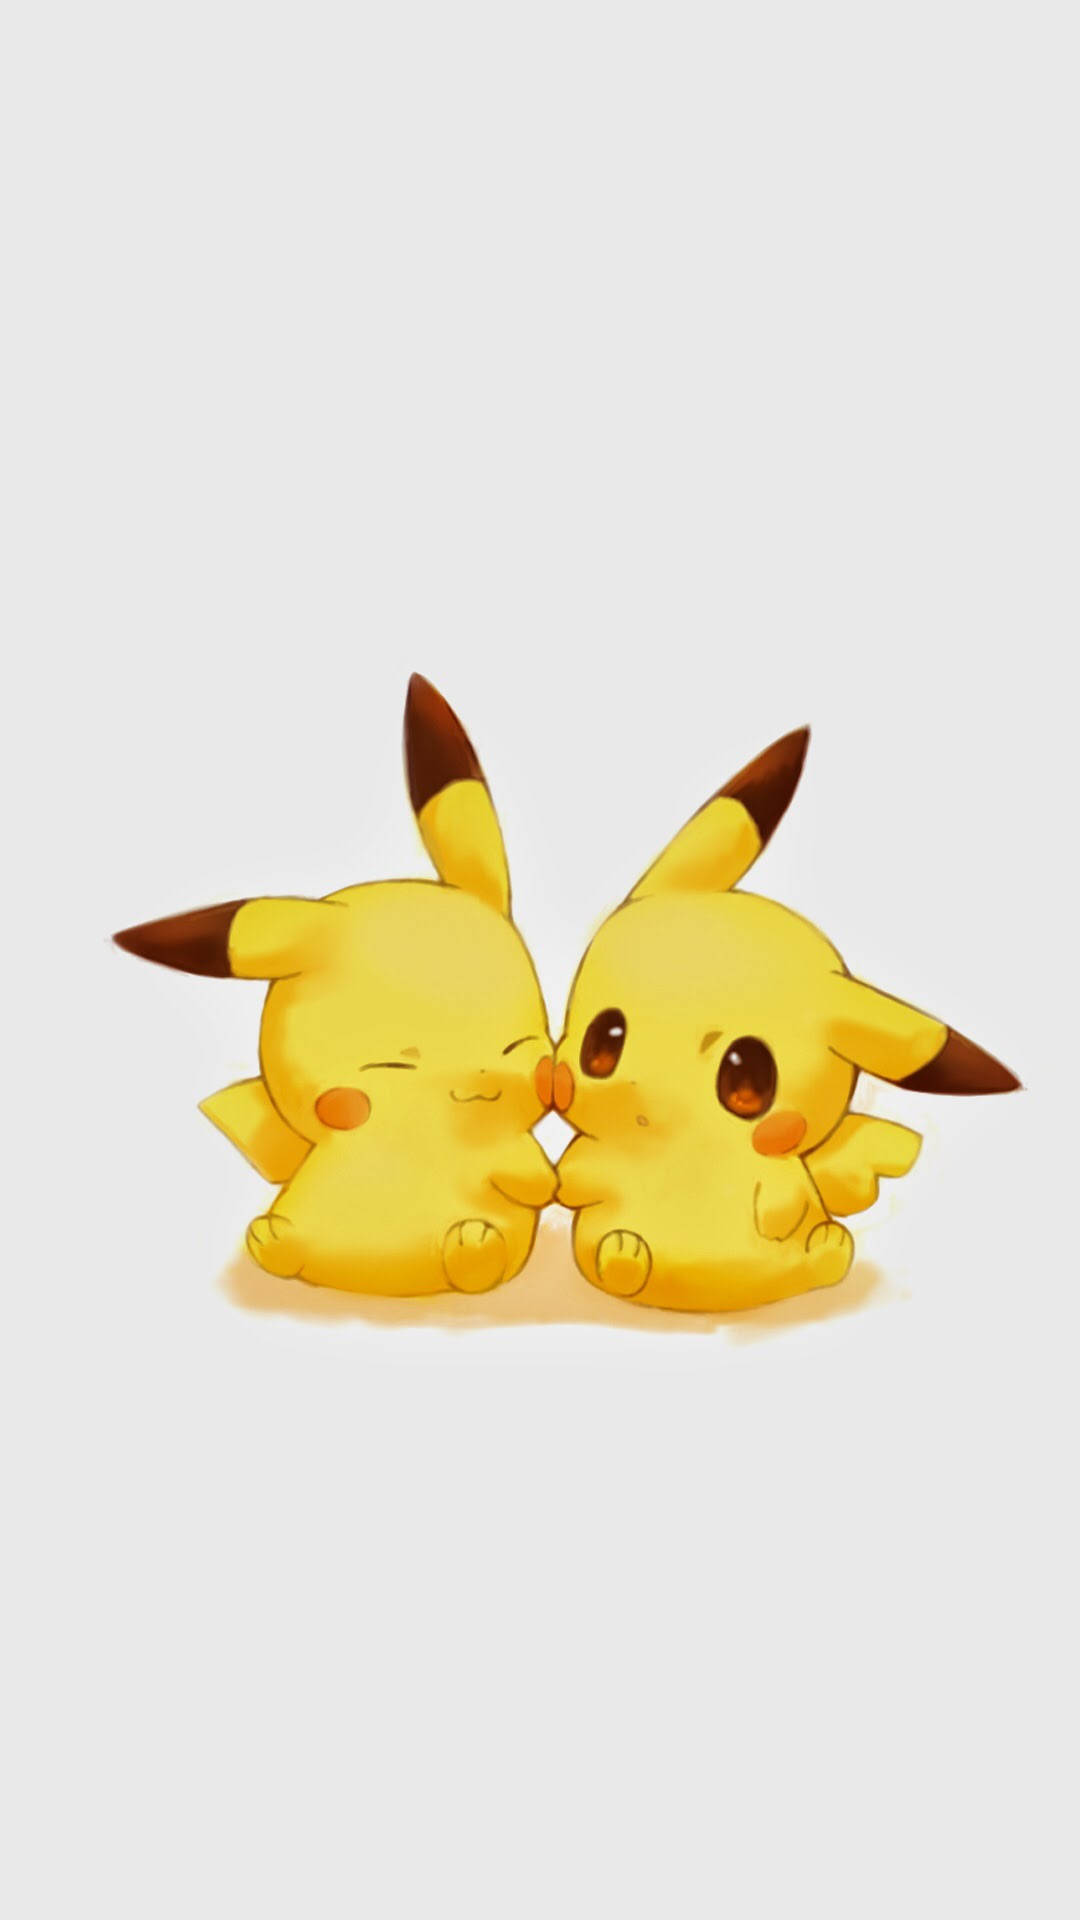 4K Pikachu Wallpapers High Quality   Download Free